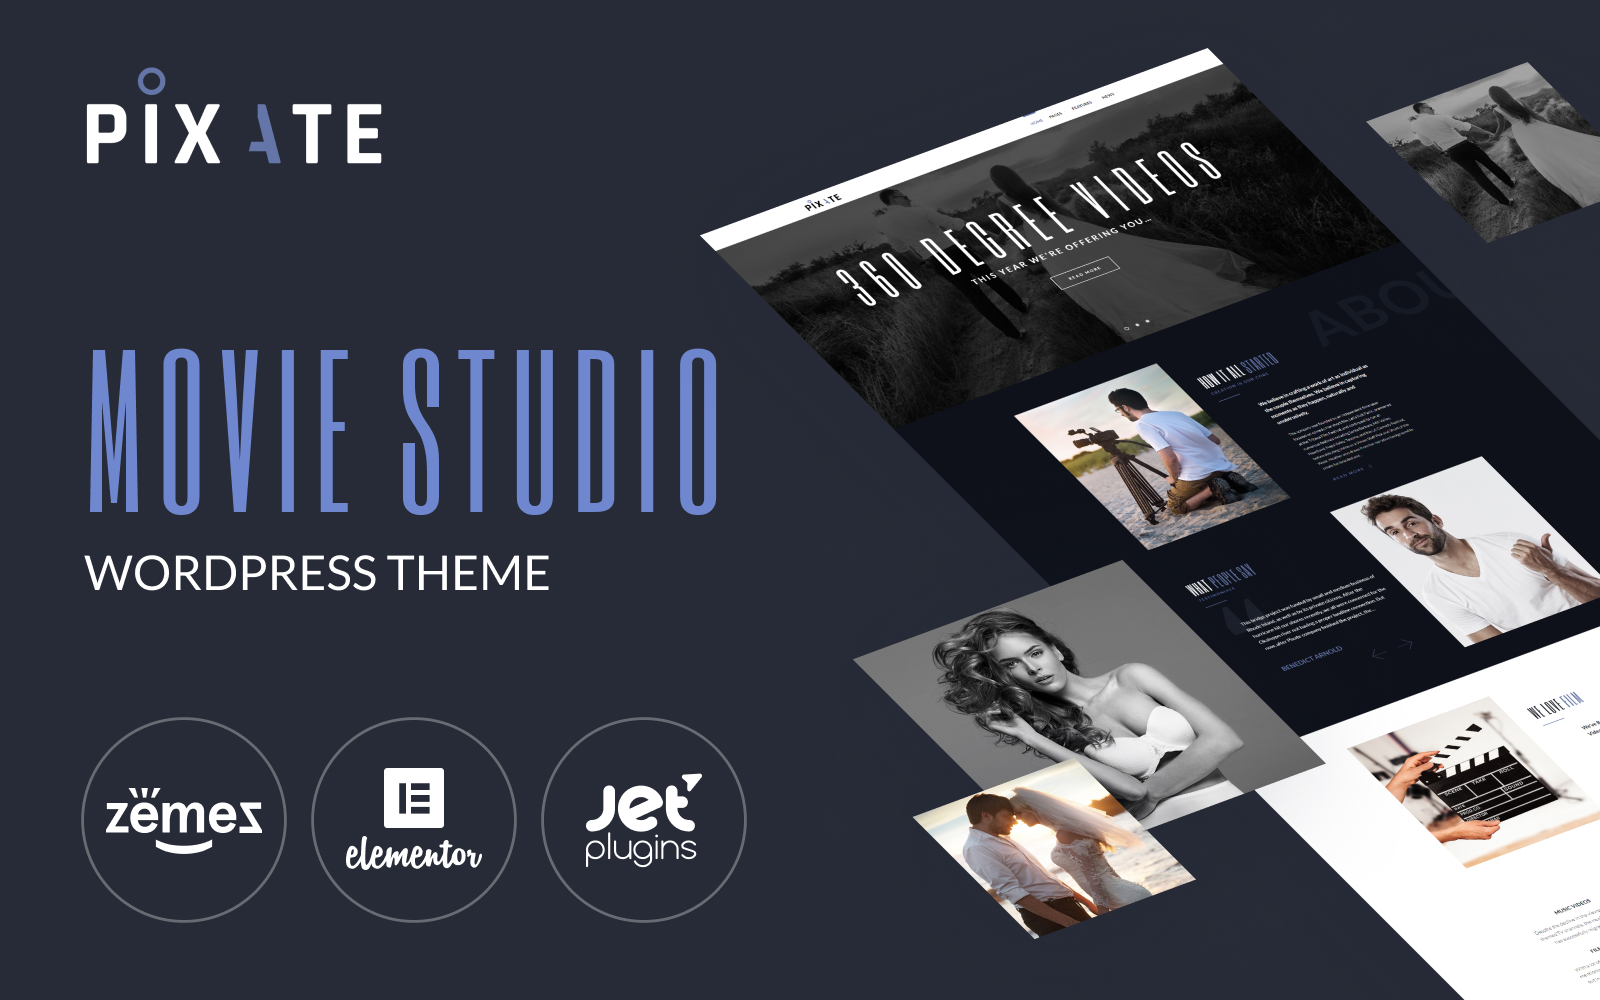 Responsywny motyw WordPress Pixate - Movie Studio WordPress Theme #65159